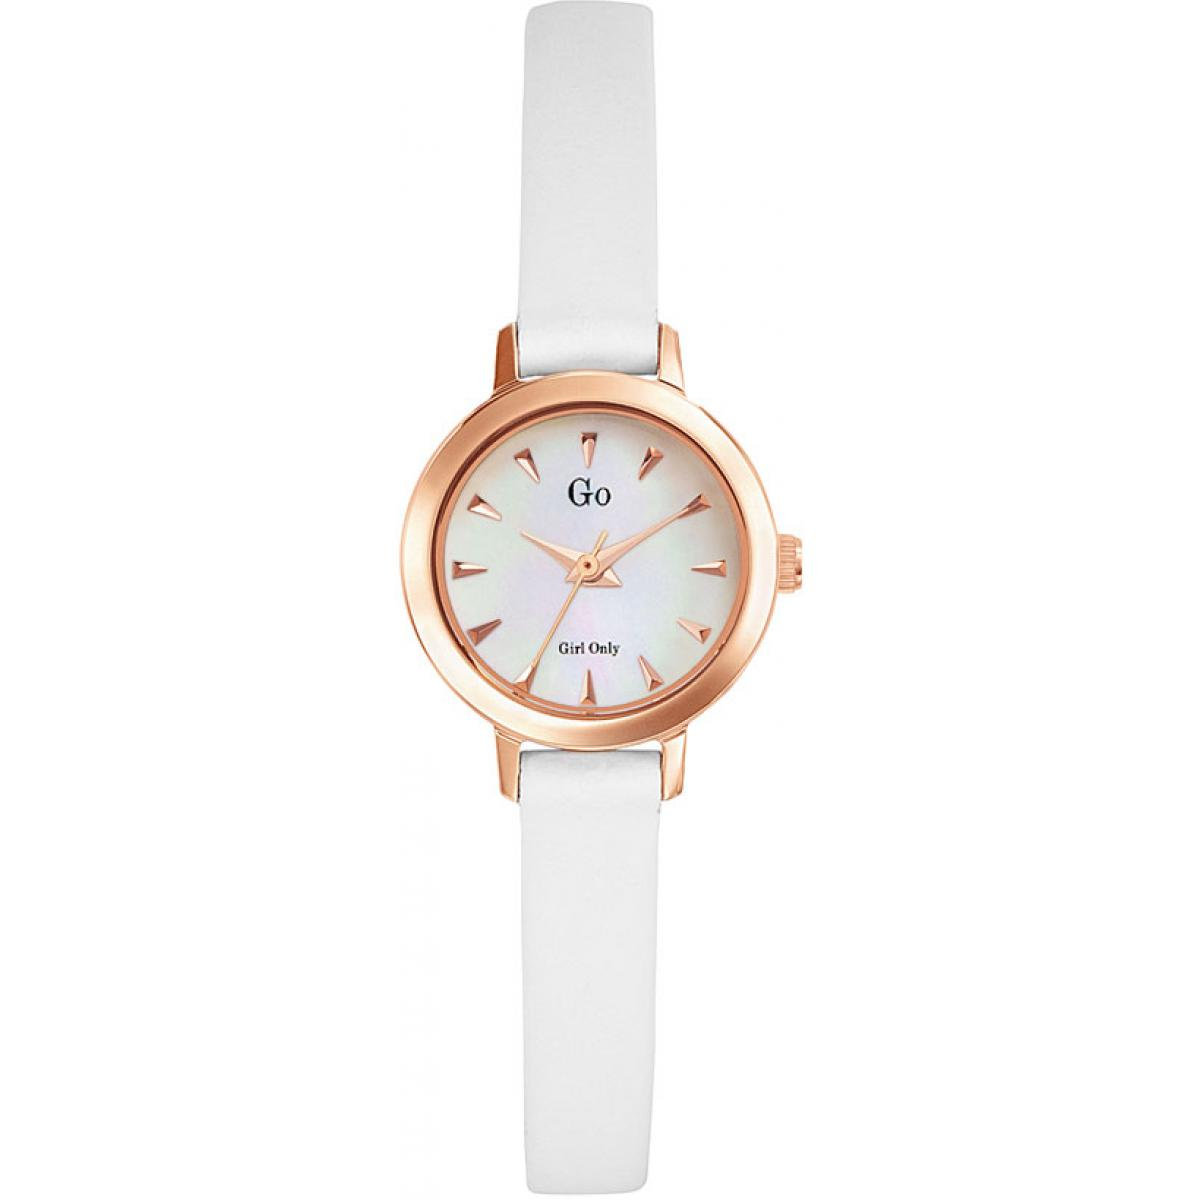 Montre Go Girl Only 698641 - Montre Cuir Blanche Femme